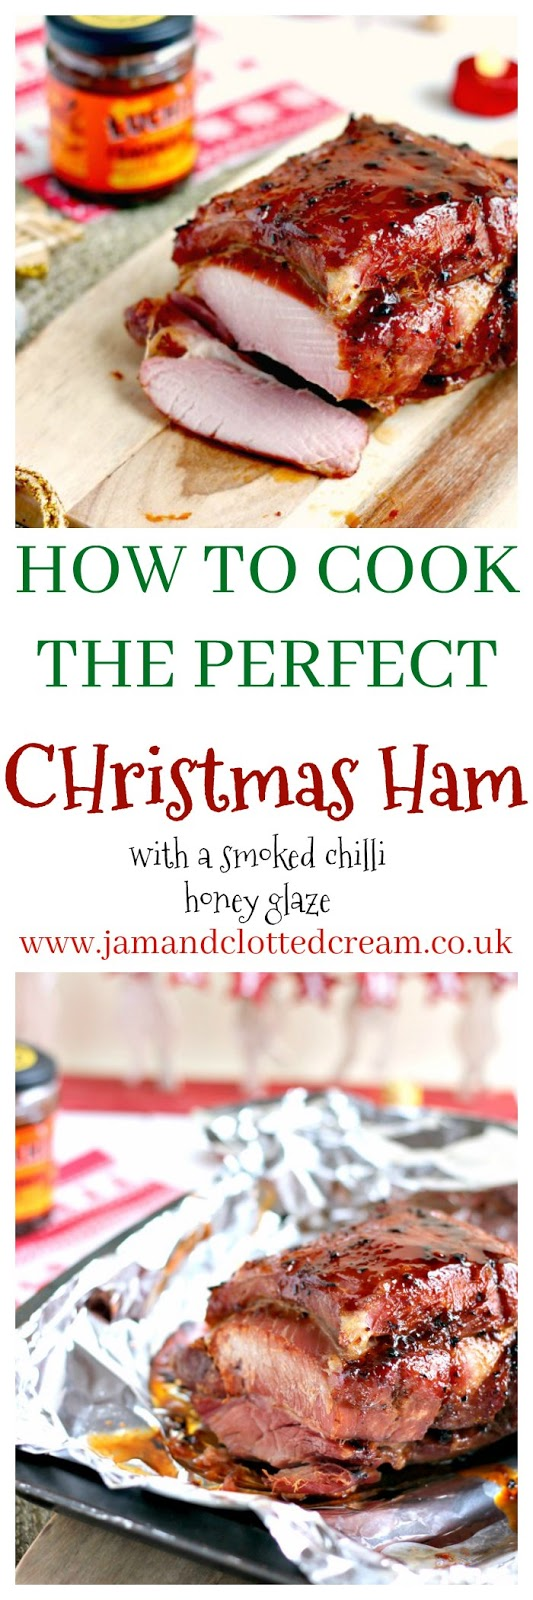 How To Cook The Perfect Christmas Ham - A Cornish Food ...